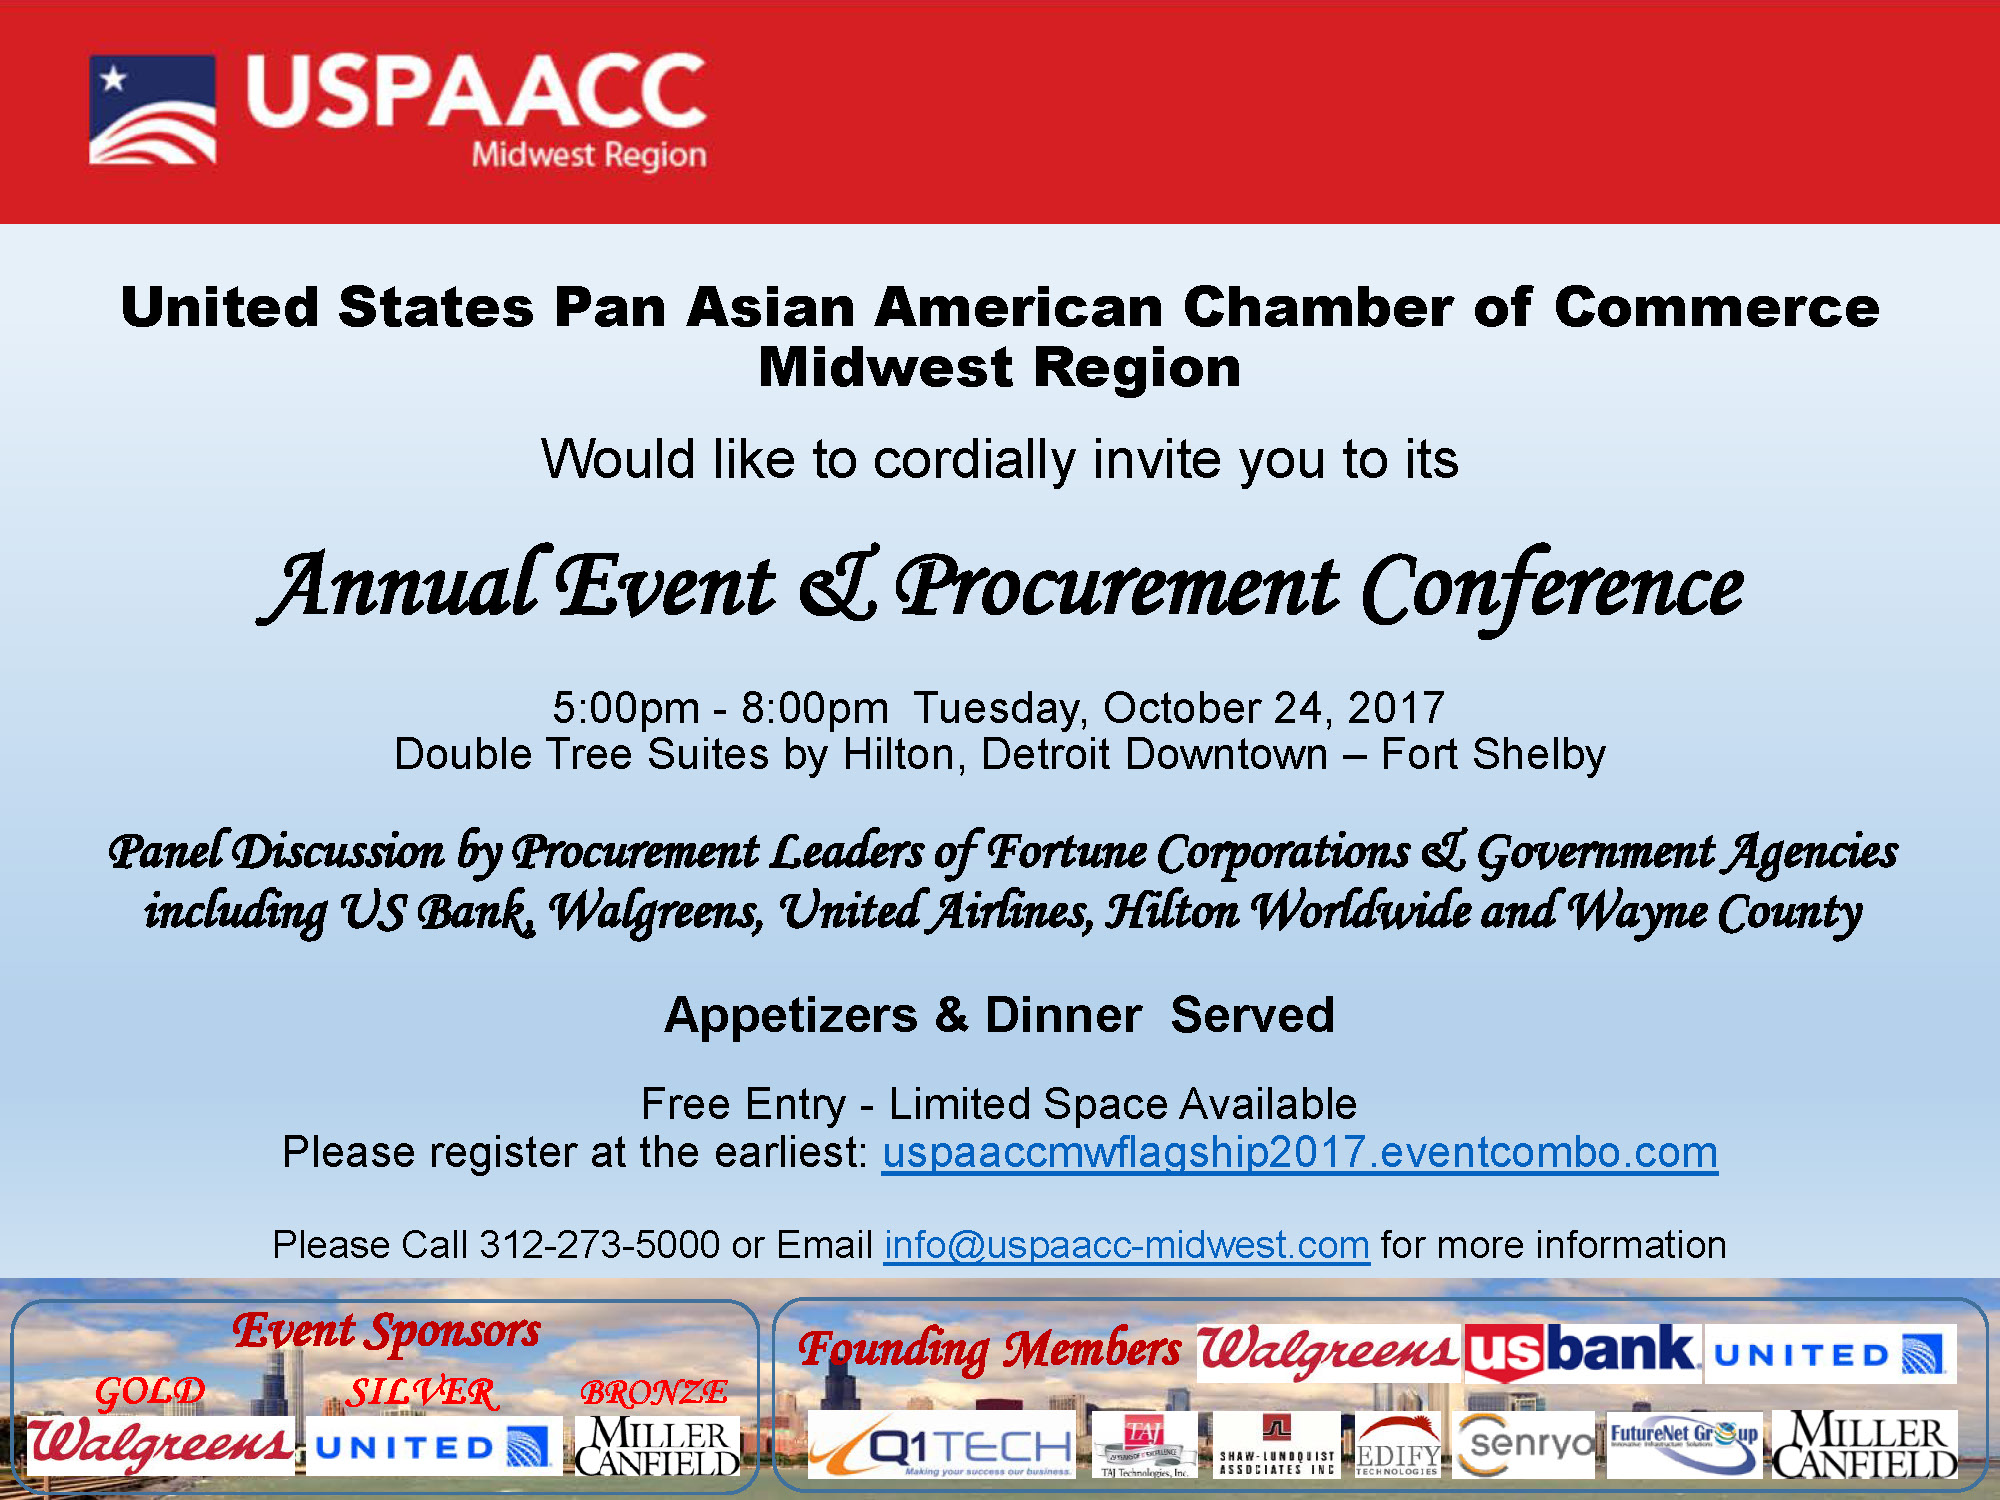 USPAACC Midwest Annual Flagship Event & Procurement Conference